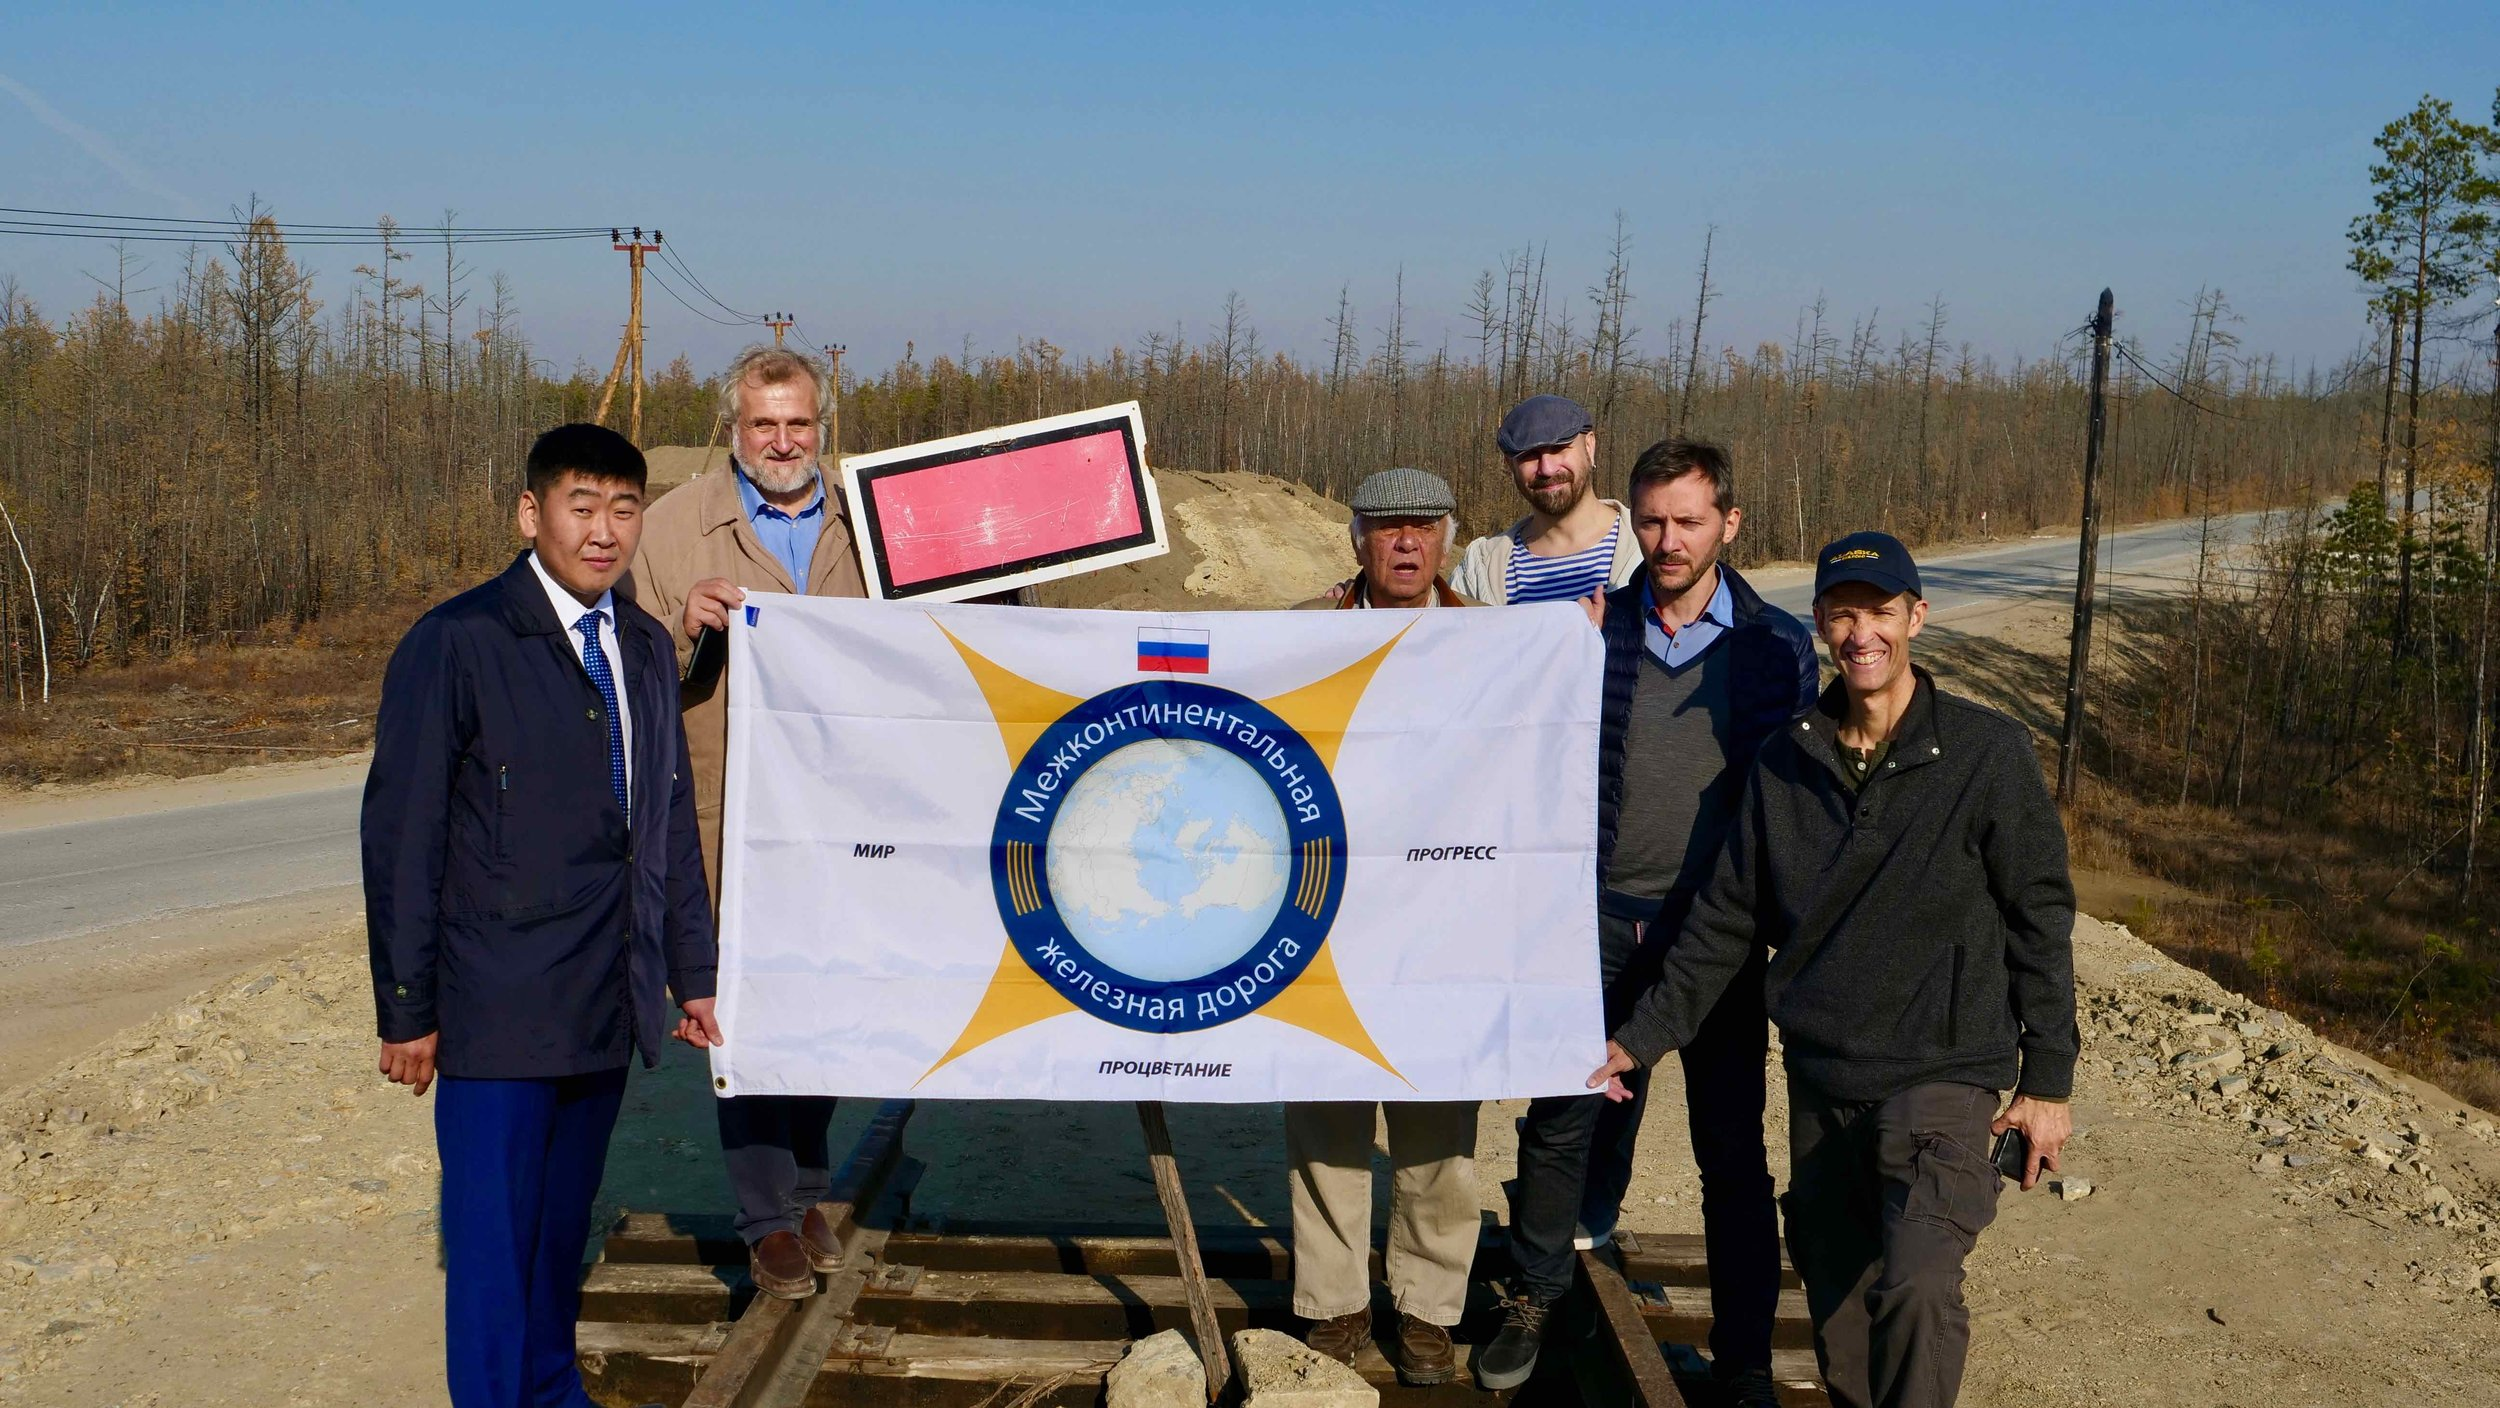 The Intercontinental Railway team unveil the Russian version of the ICR flag at the railhead in Nizhny Bestyakh, Siberia. From here, Yakutia Railways is extending the line toward the Bering Strait. From left to right: Alexei Mestnikov (Yakutia Railway), Victor Razbegin (ICR), George Koumal (ICR), Vlad Ketkovich (film producer), Dmitriy Kondratov (Yakutia Railway), Scott Spencer (ICR). During the ceremony, Mr. Koumal and Mr. Spencer presented Mr. Razbegin with an honorary golden spike for his three decades of work researching and promoting the InterContinental Railway in Russia and abroad.